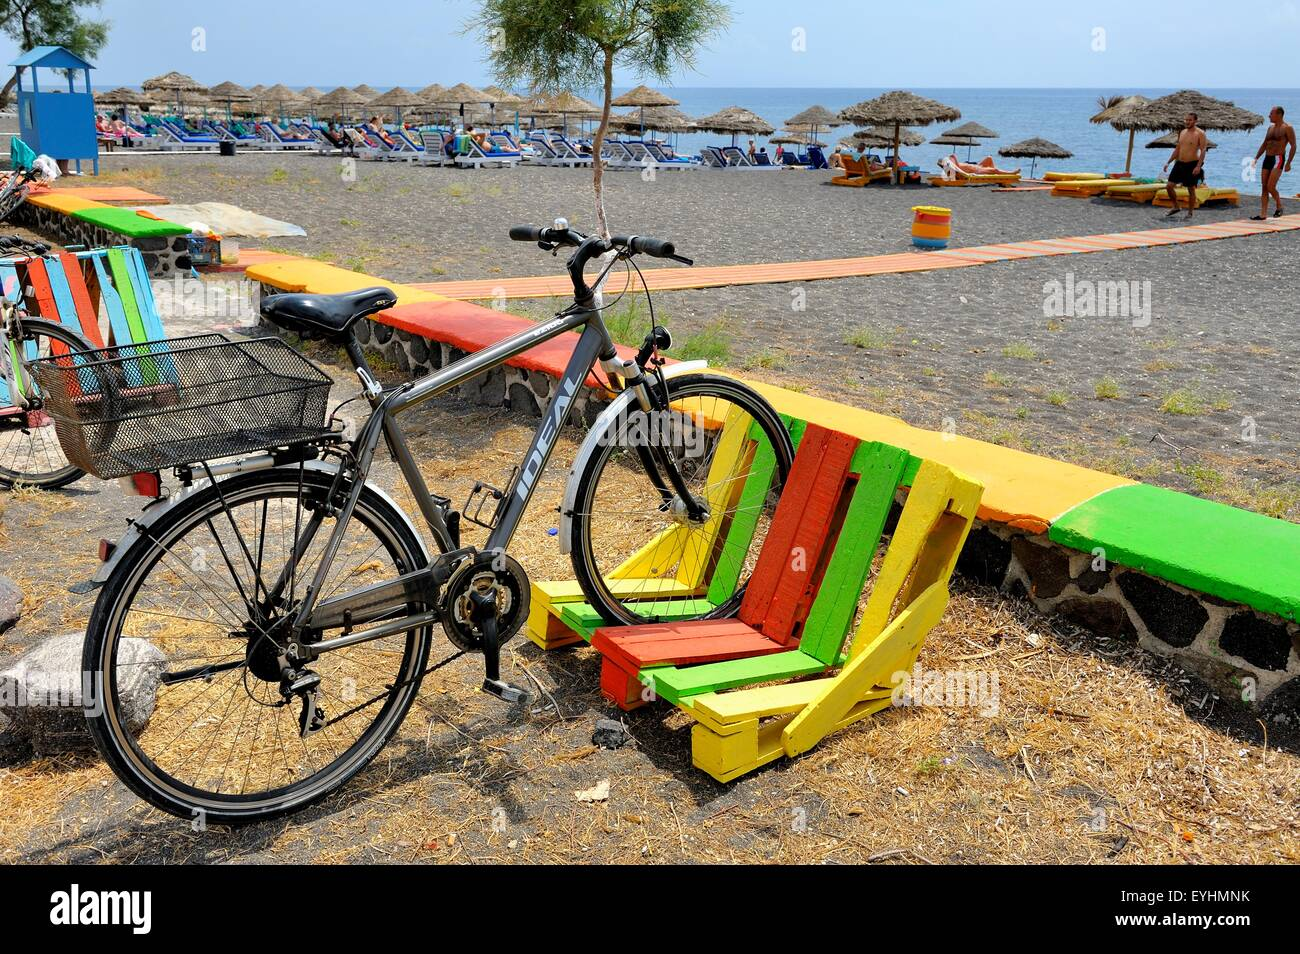 https www alamy com stock photo a colorful bike rack made out of a wooden pallet on perissa beach 85826655 html